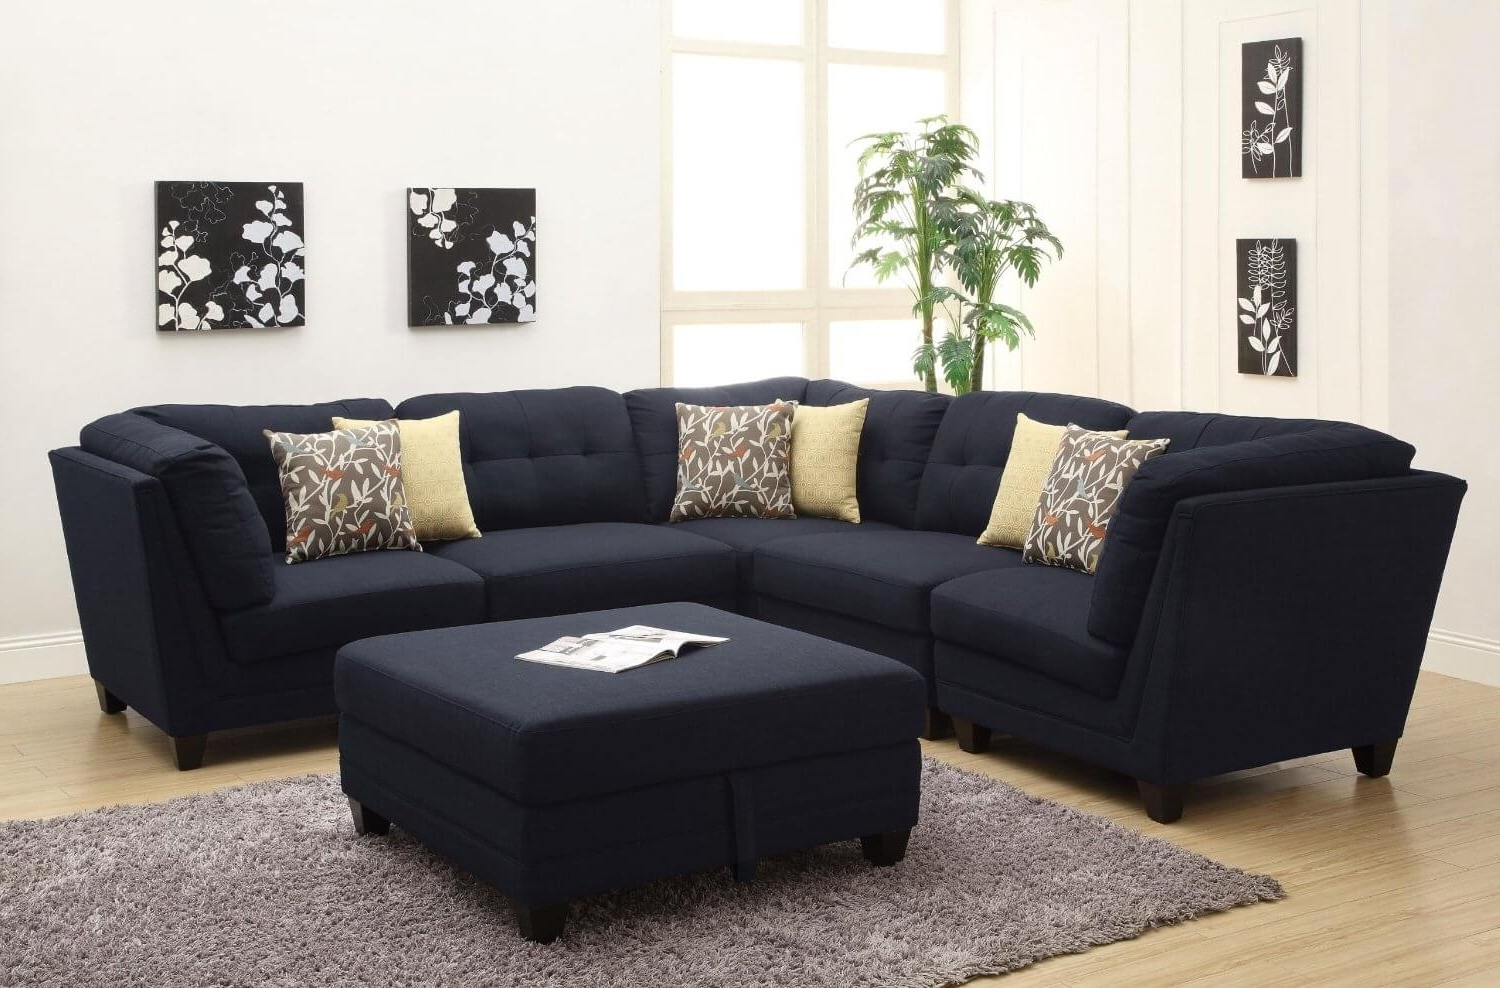 Favorite Eco Friendly Sectional Sofas Regarding 100 Awesome Sectional Sofas Under $1,000 (2018) (View 13 of 20)